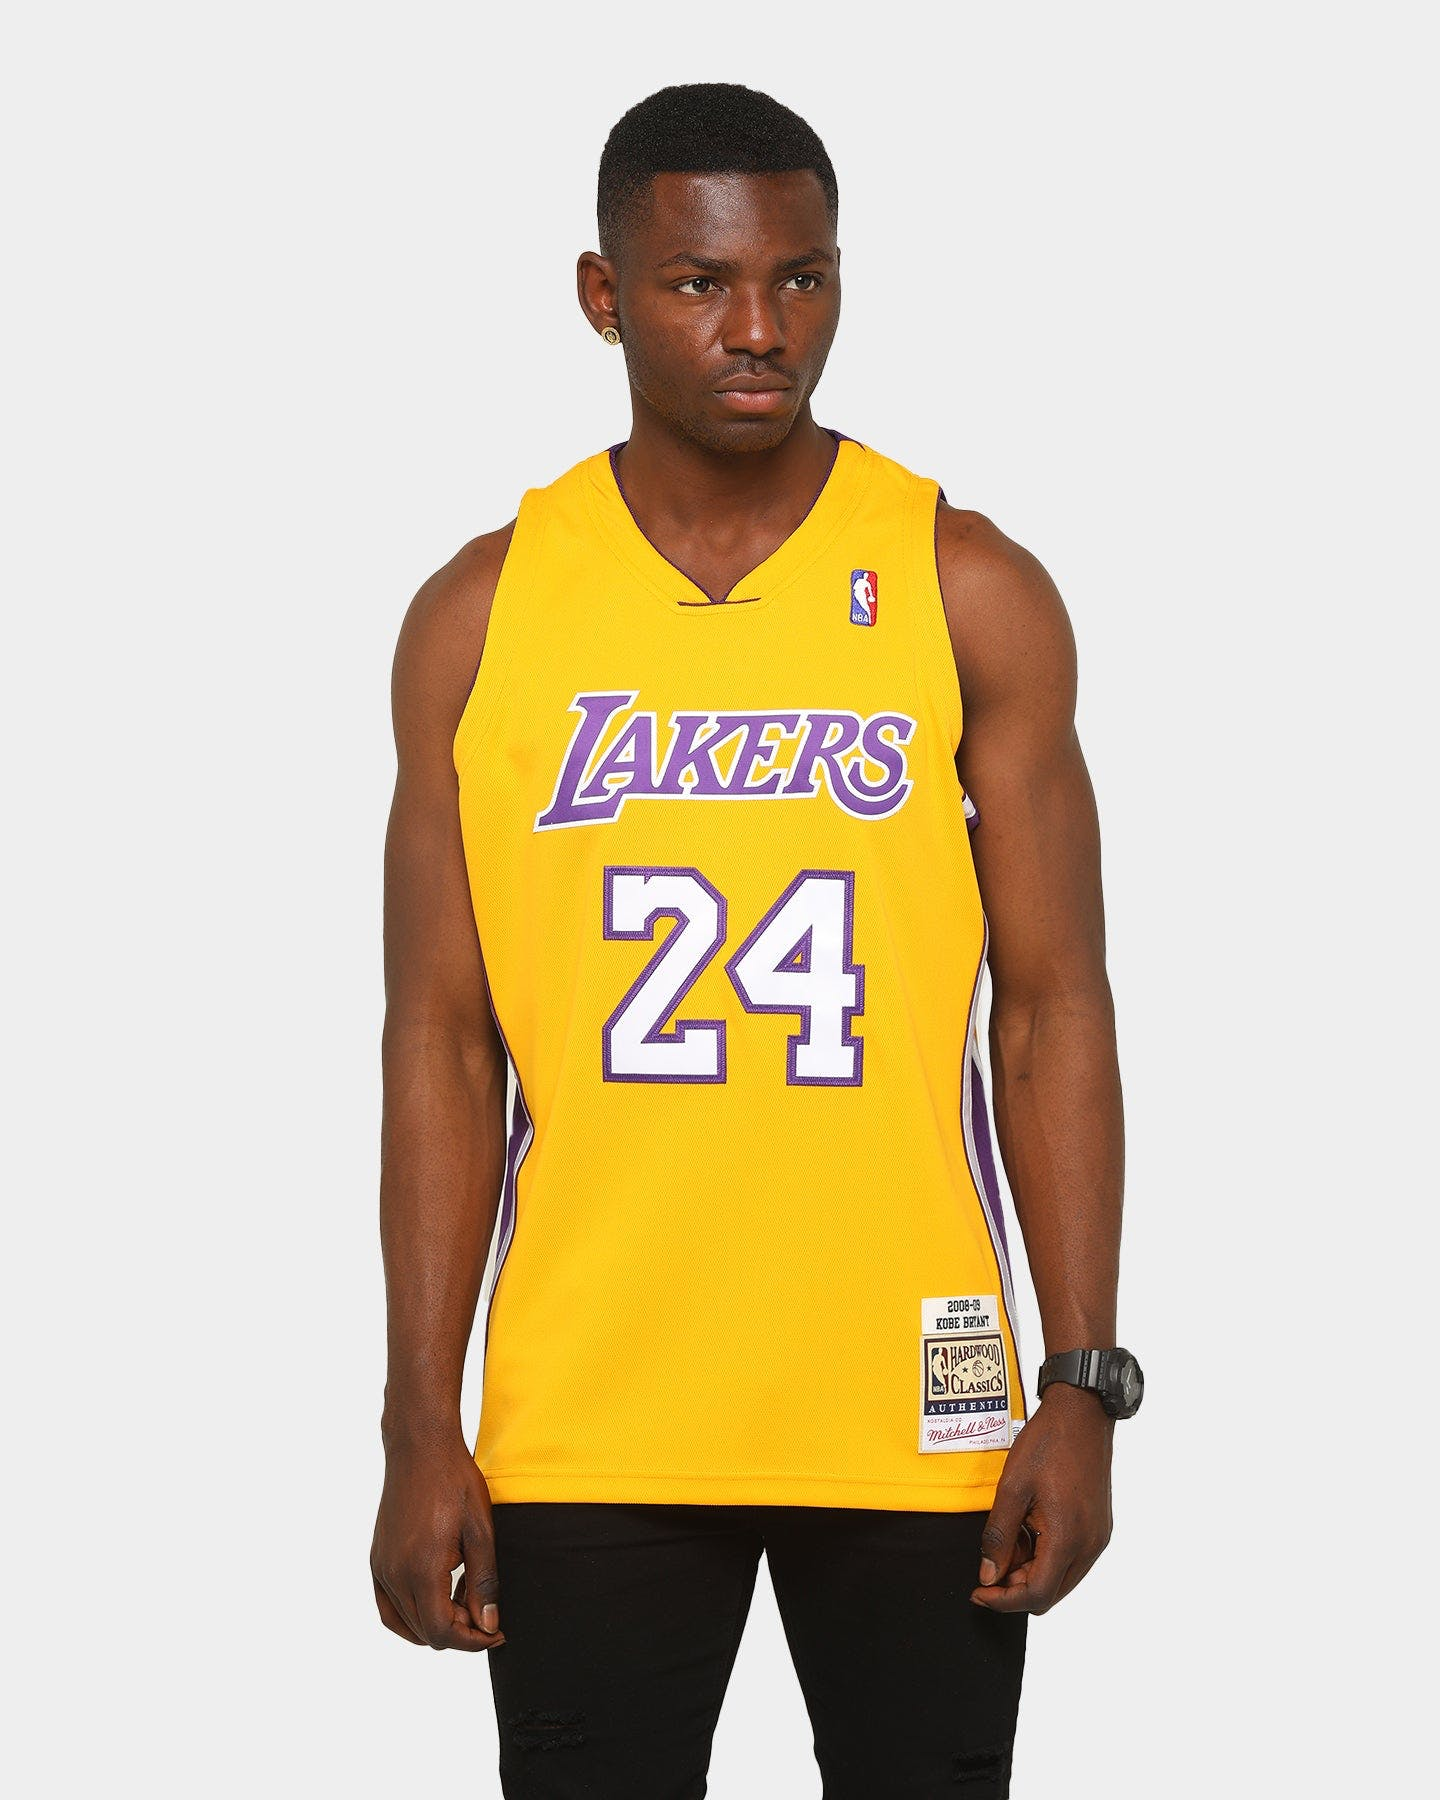 Mitchell Ness Los Angeles Lakers Kobe Bryant 24 08 09 Authentic Nba Culture Kings